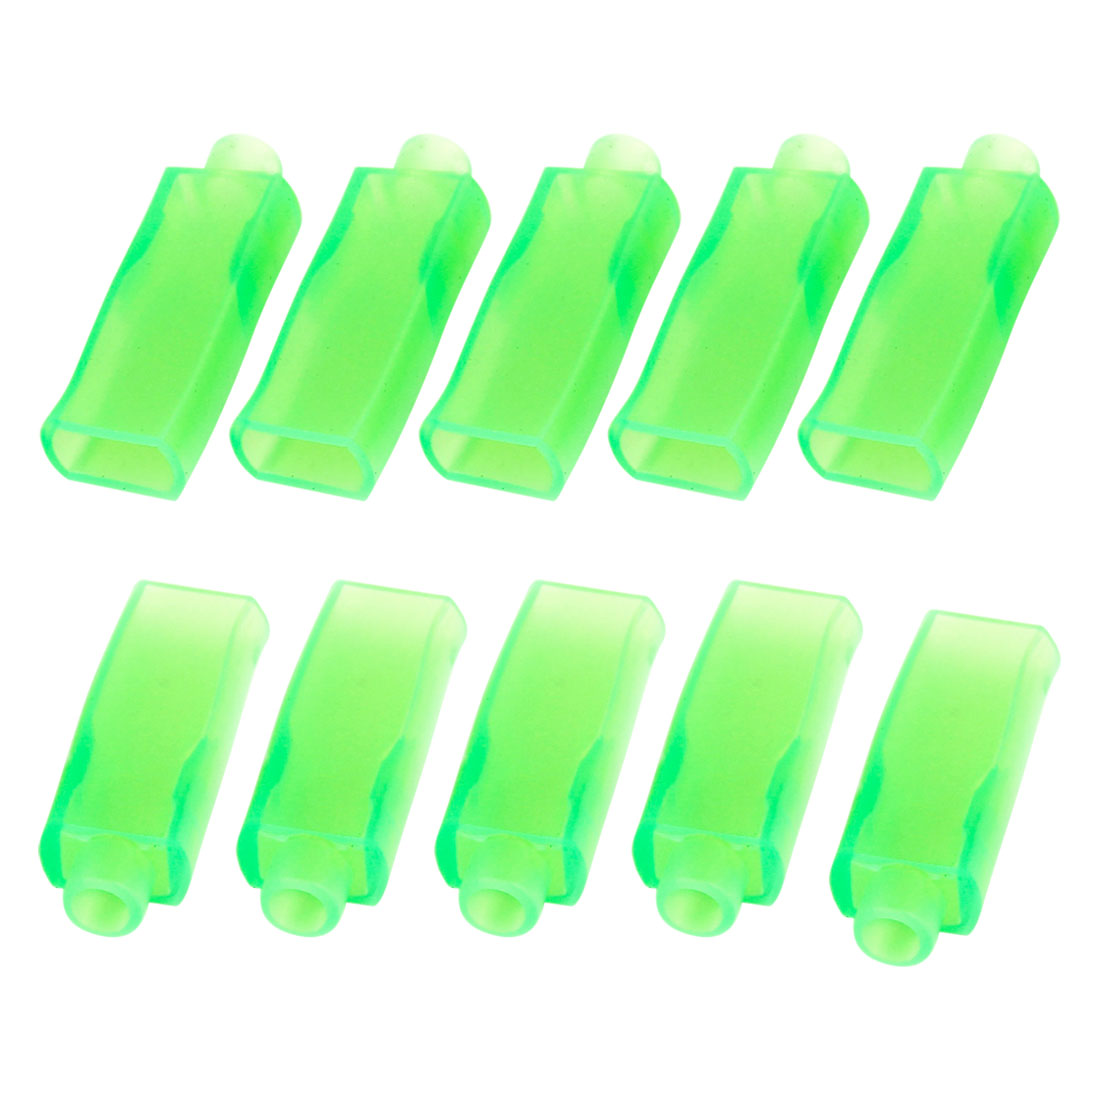 10 Pcs Green PVC Connectors 6.3mm Double Female Terminal Sleeves